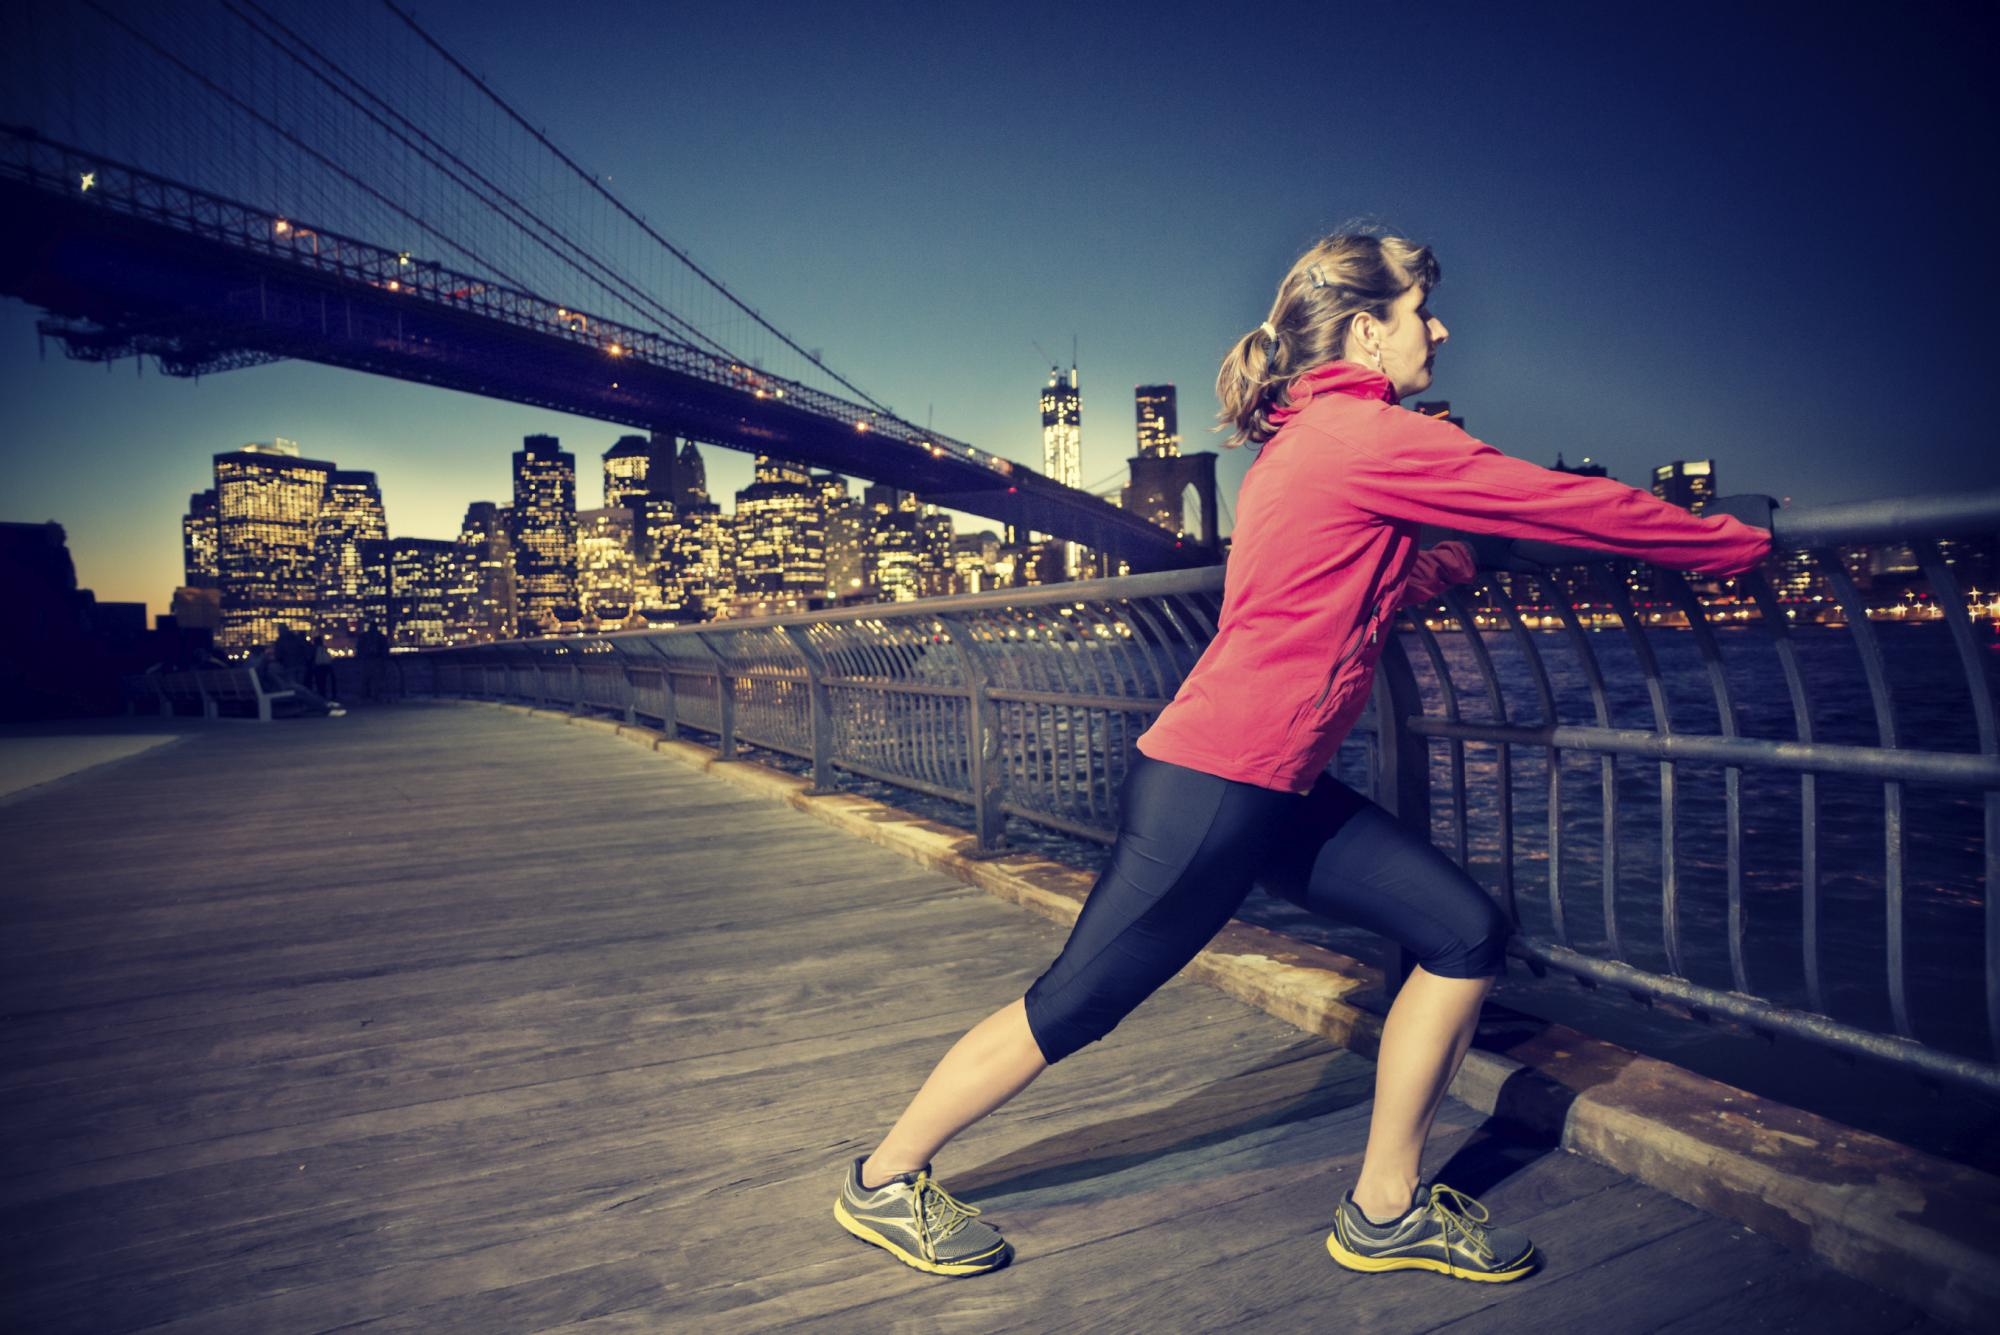 Female exerciser stretching their legs during a workout along the river with a large bridge running across